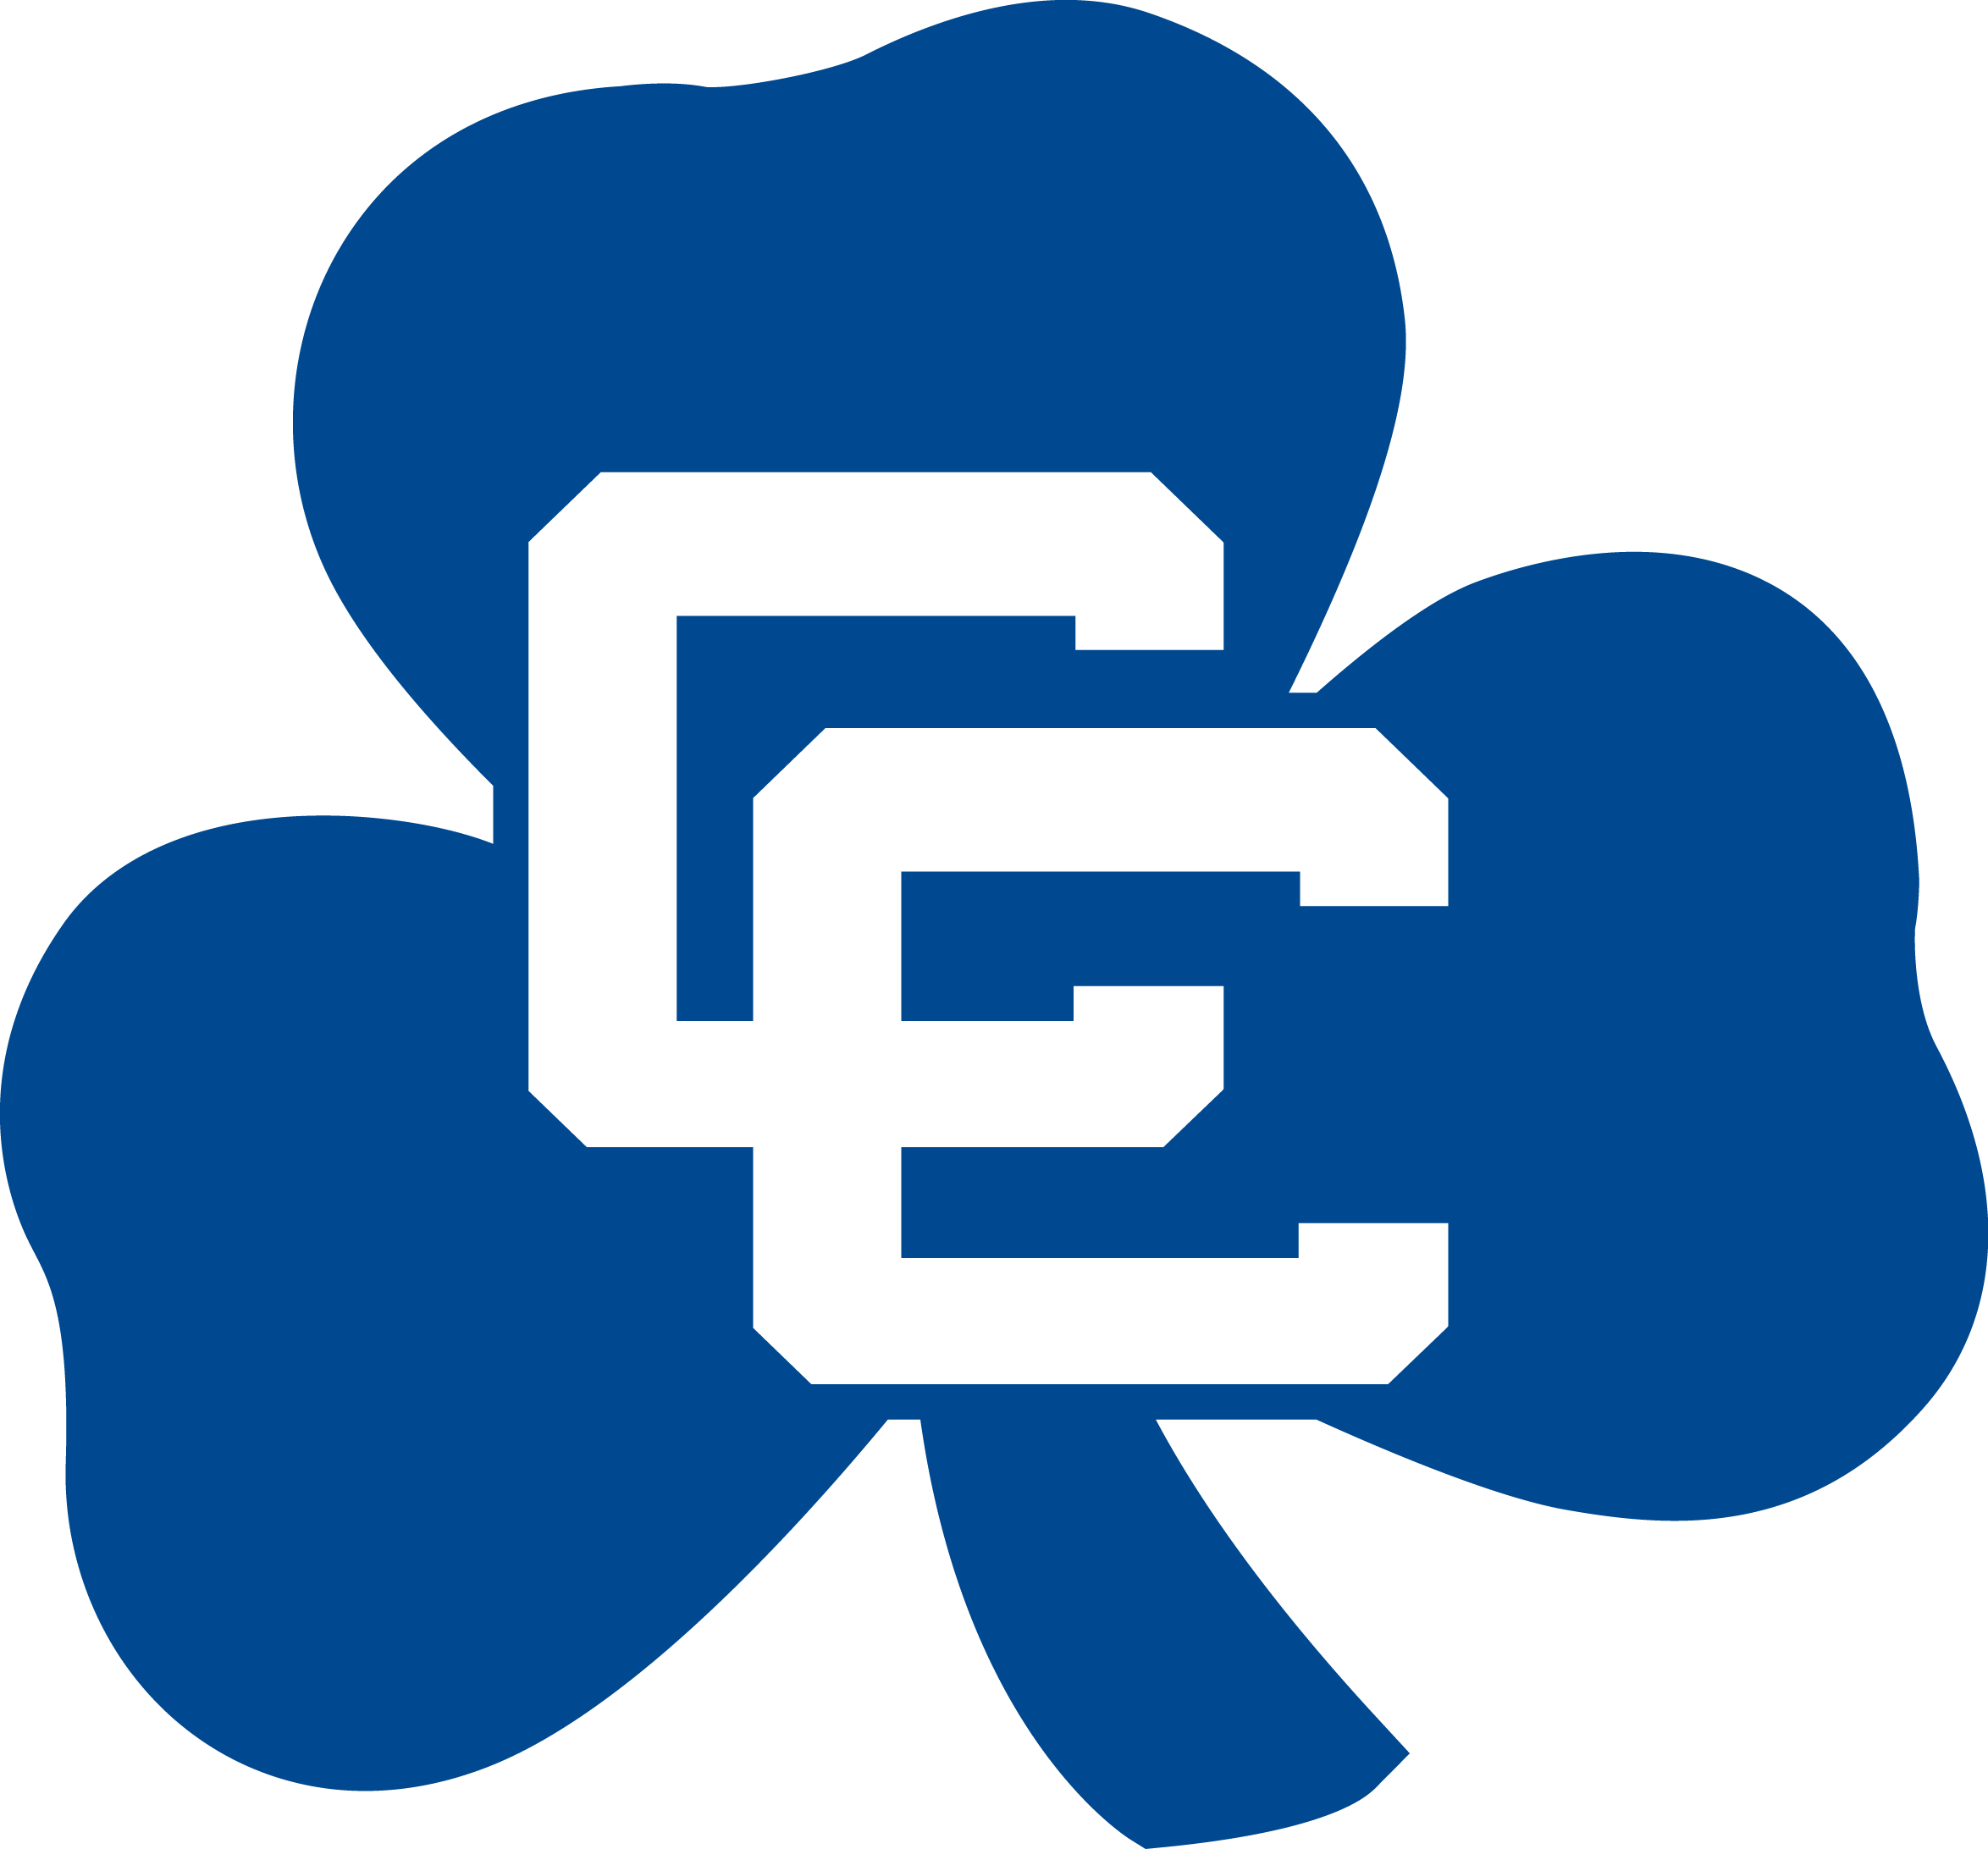 Detroit Catholic Central High School